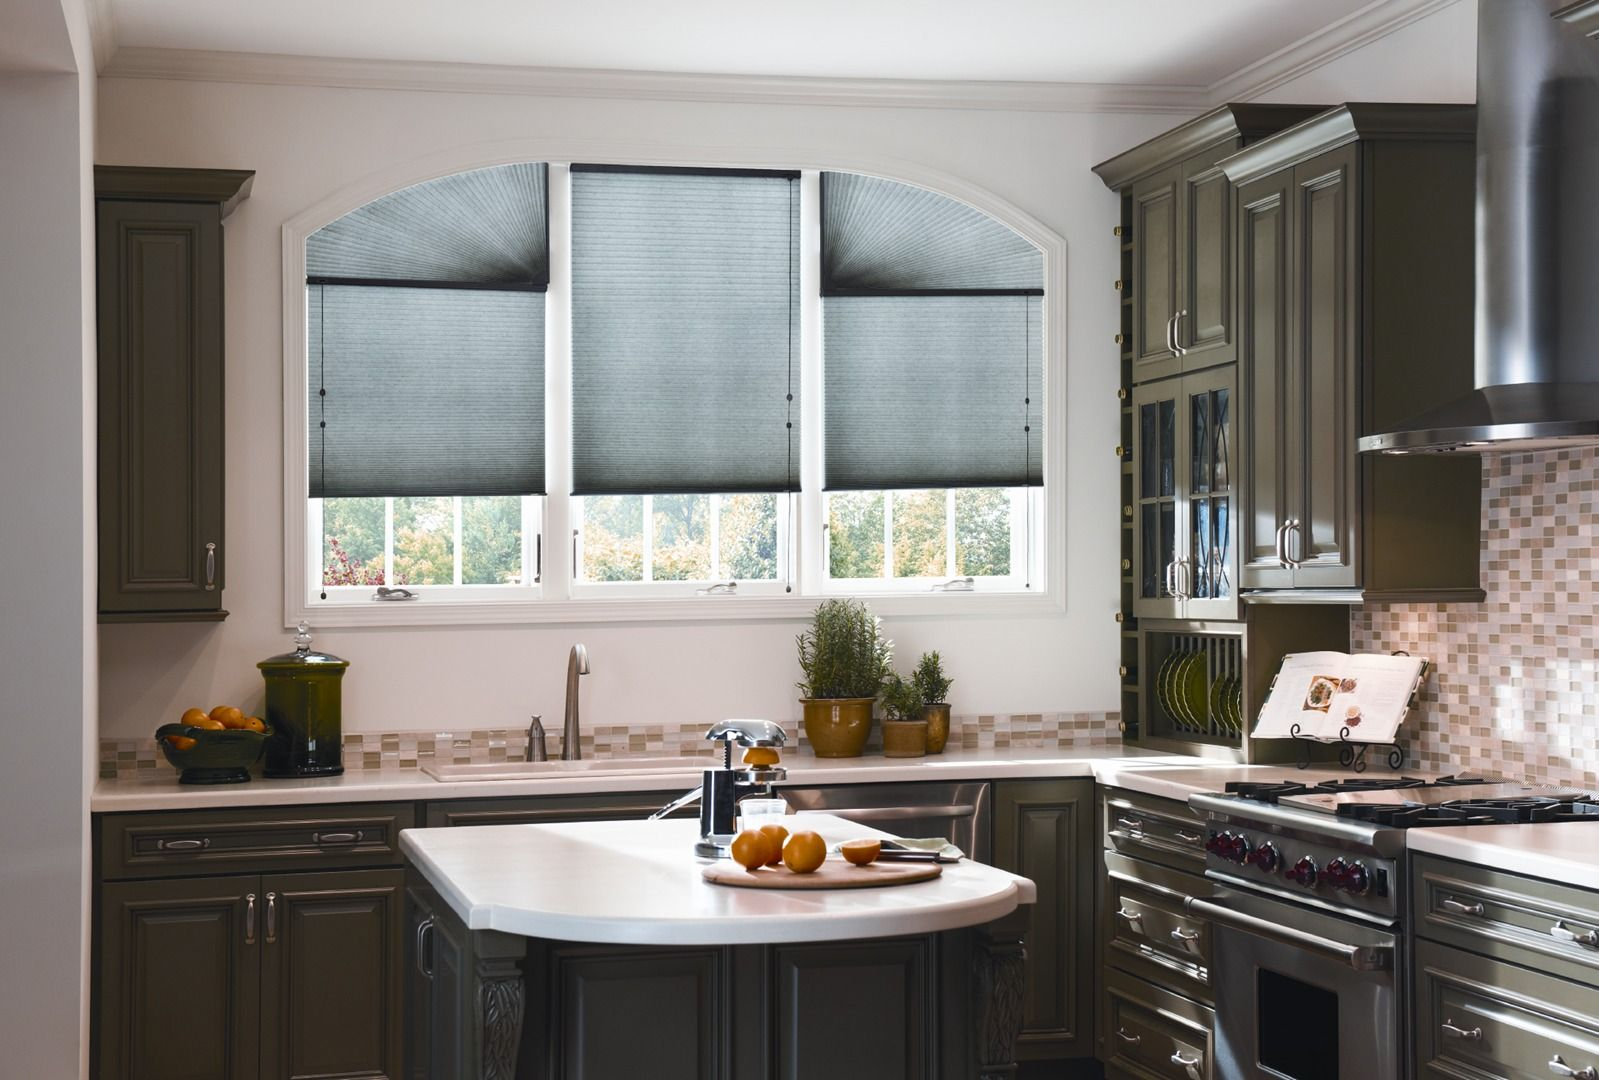 Graber cellular shades above kitchen sink